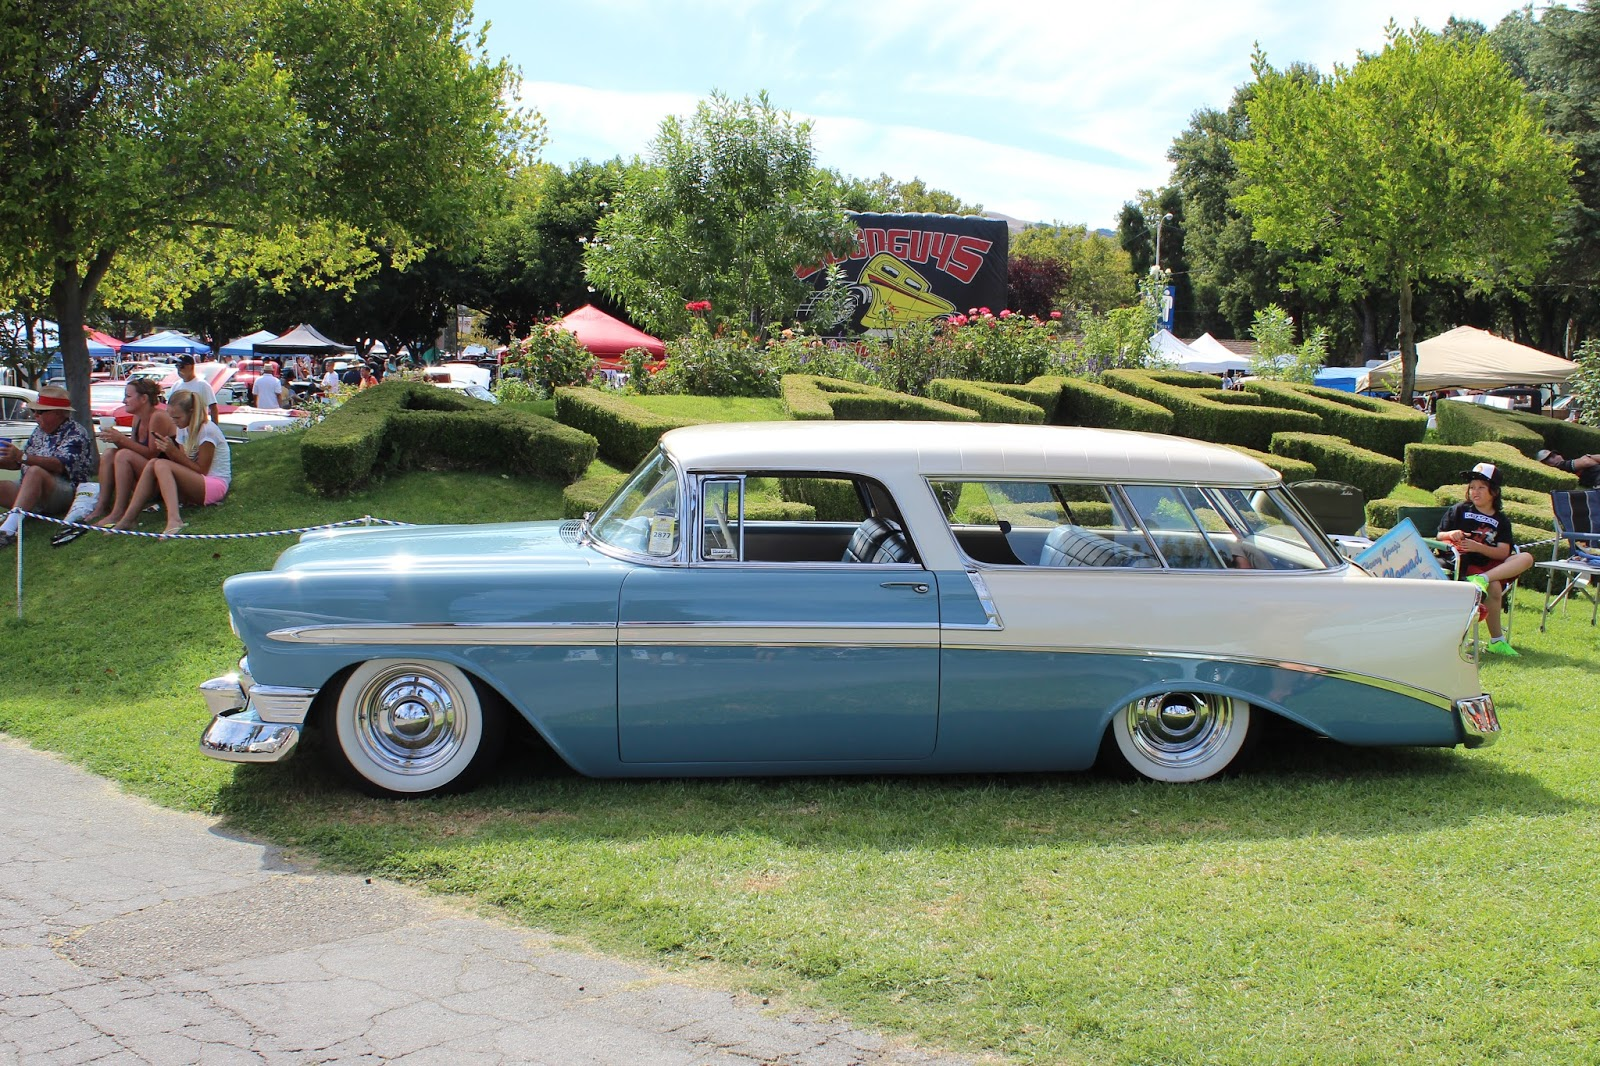 Hot Rods And Muscle Cars At Goodguys Pleasanton Car Show - Good guys cars